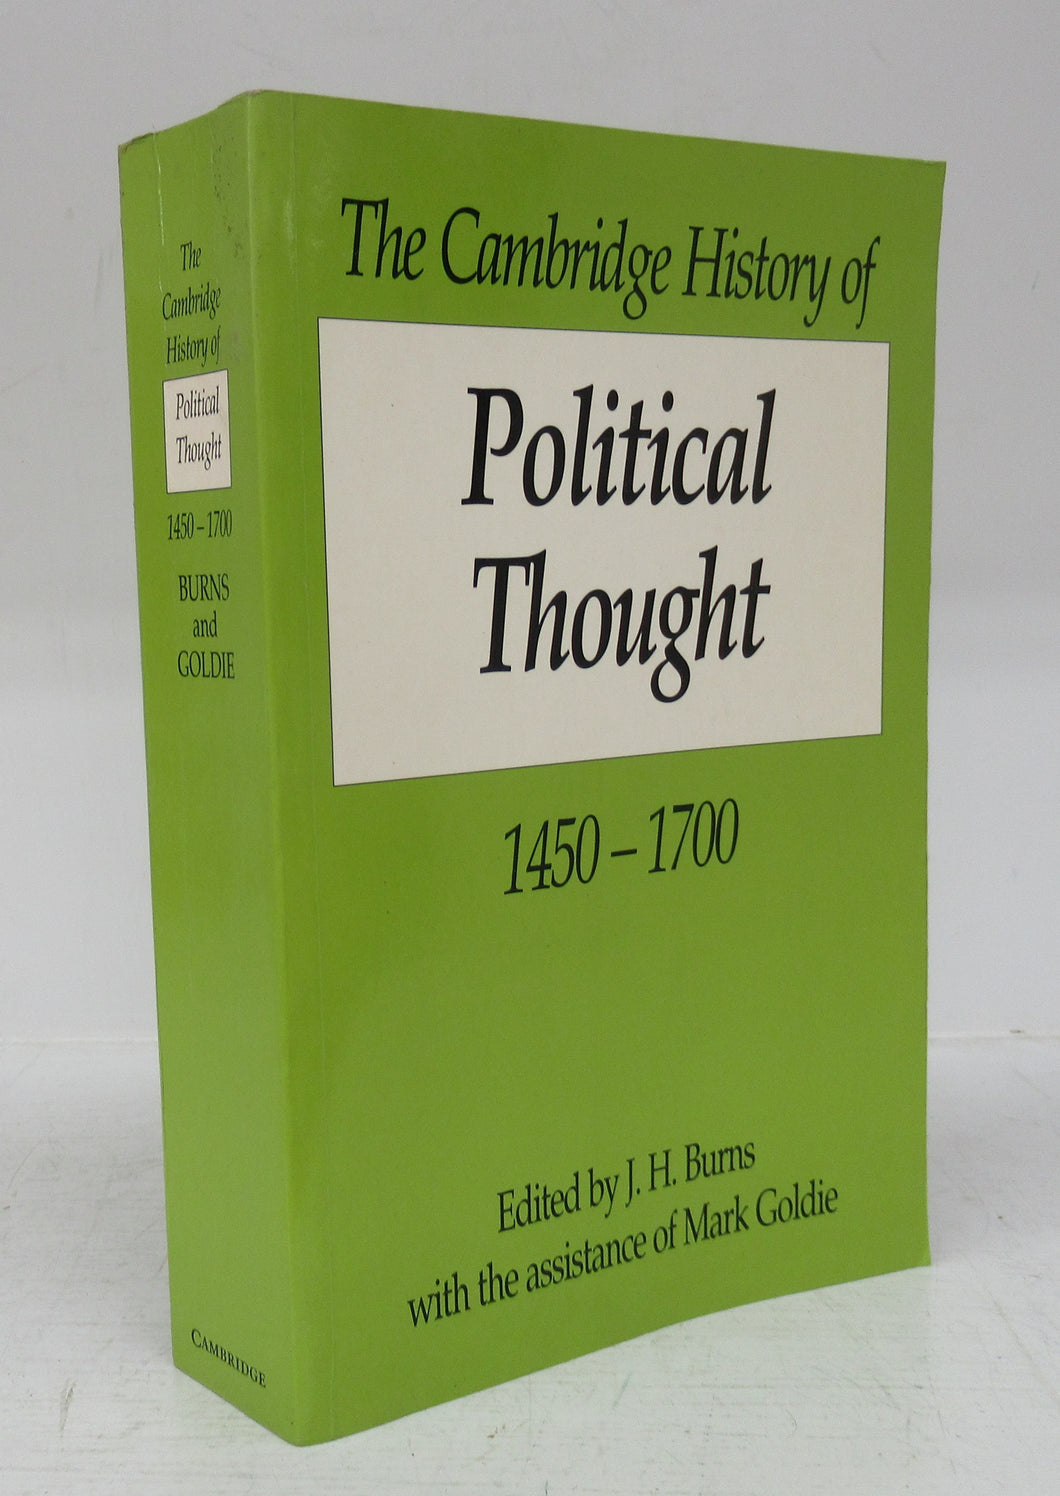 The Cambridge History of Political Thought 1450-1700